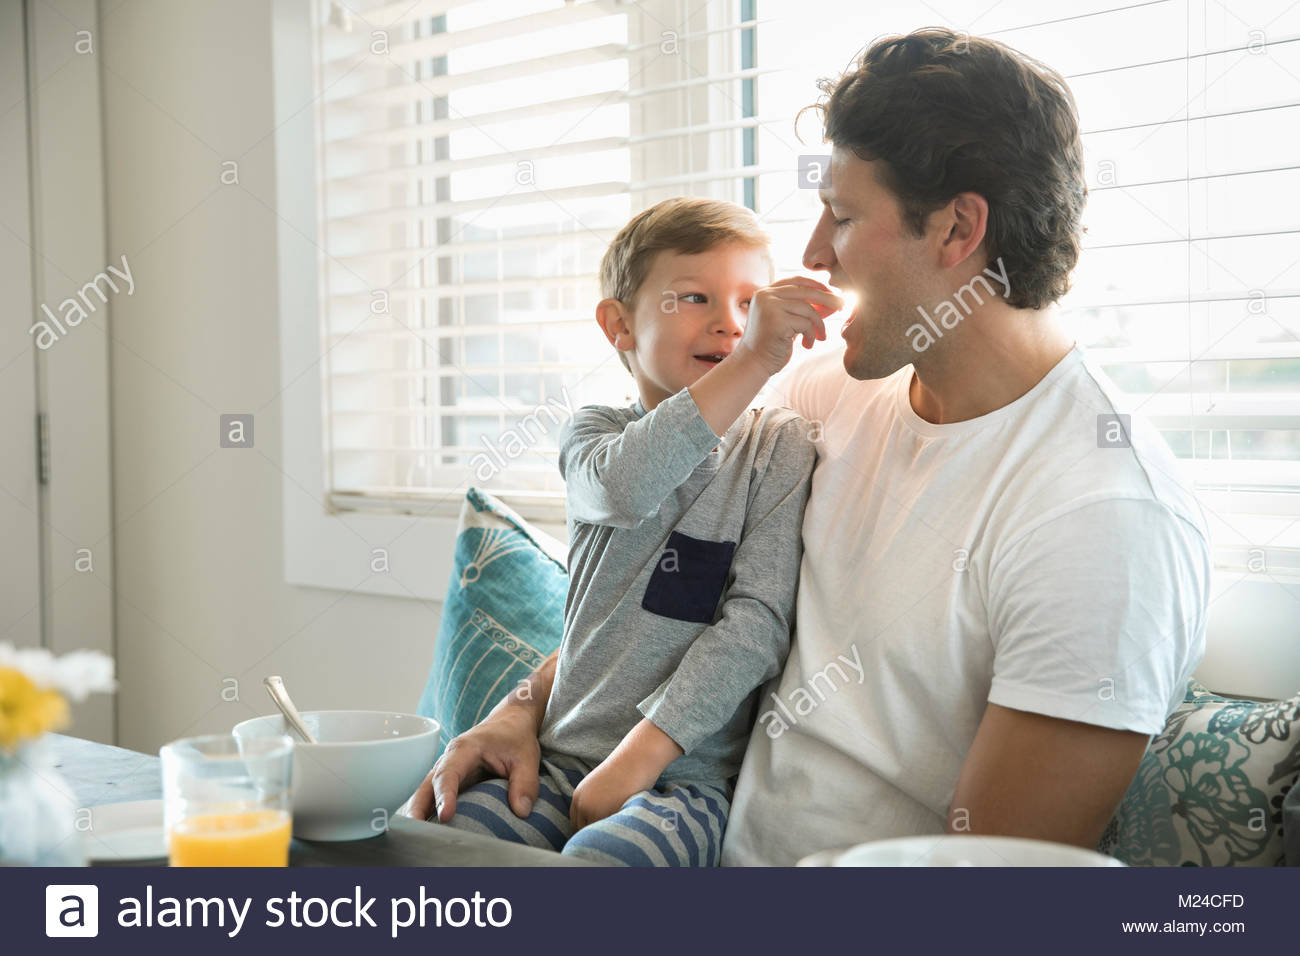 Son feeding cereal to father in breakfast nook - Stock Image